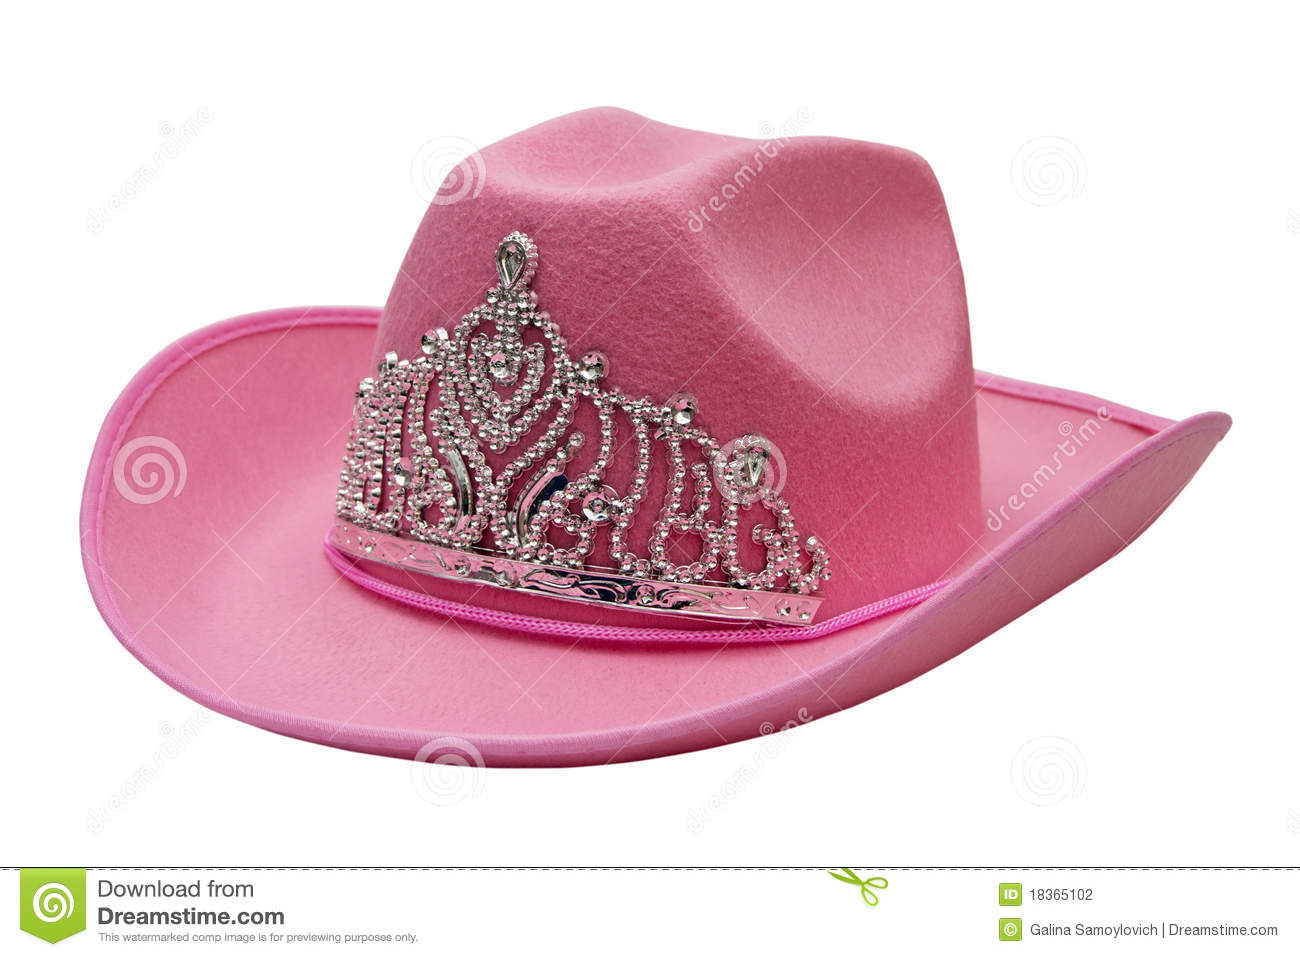 df0ec614b40 Pink Cowboy Hat Stock Images - Download 722 Royalty Free Photos